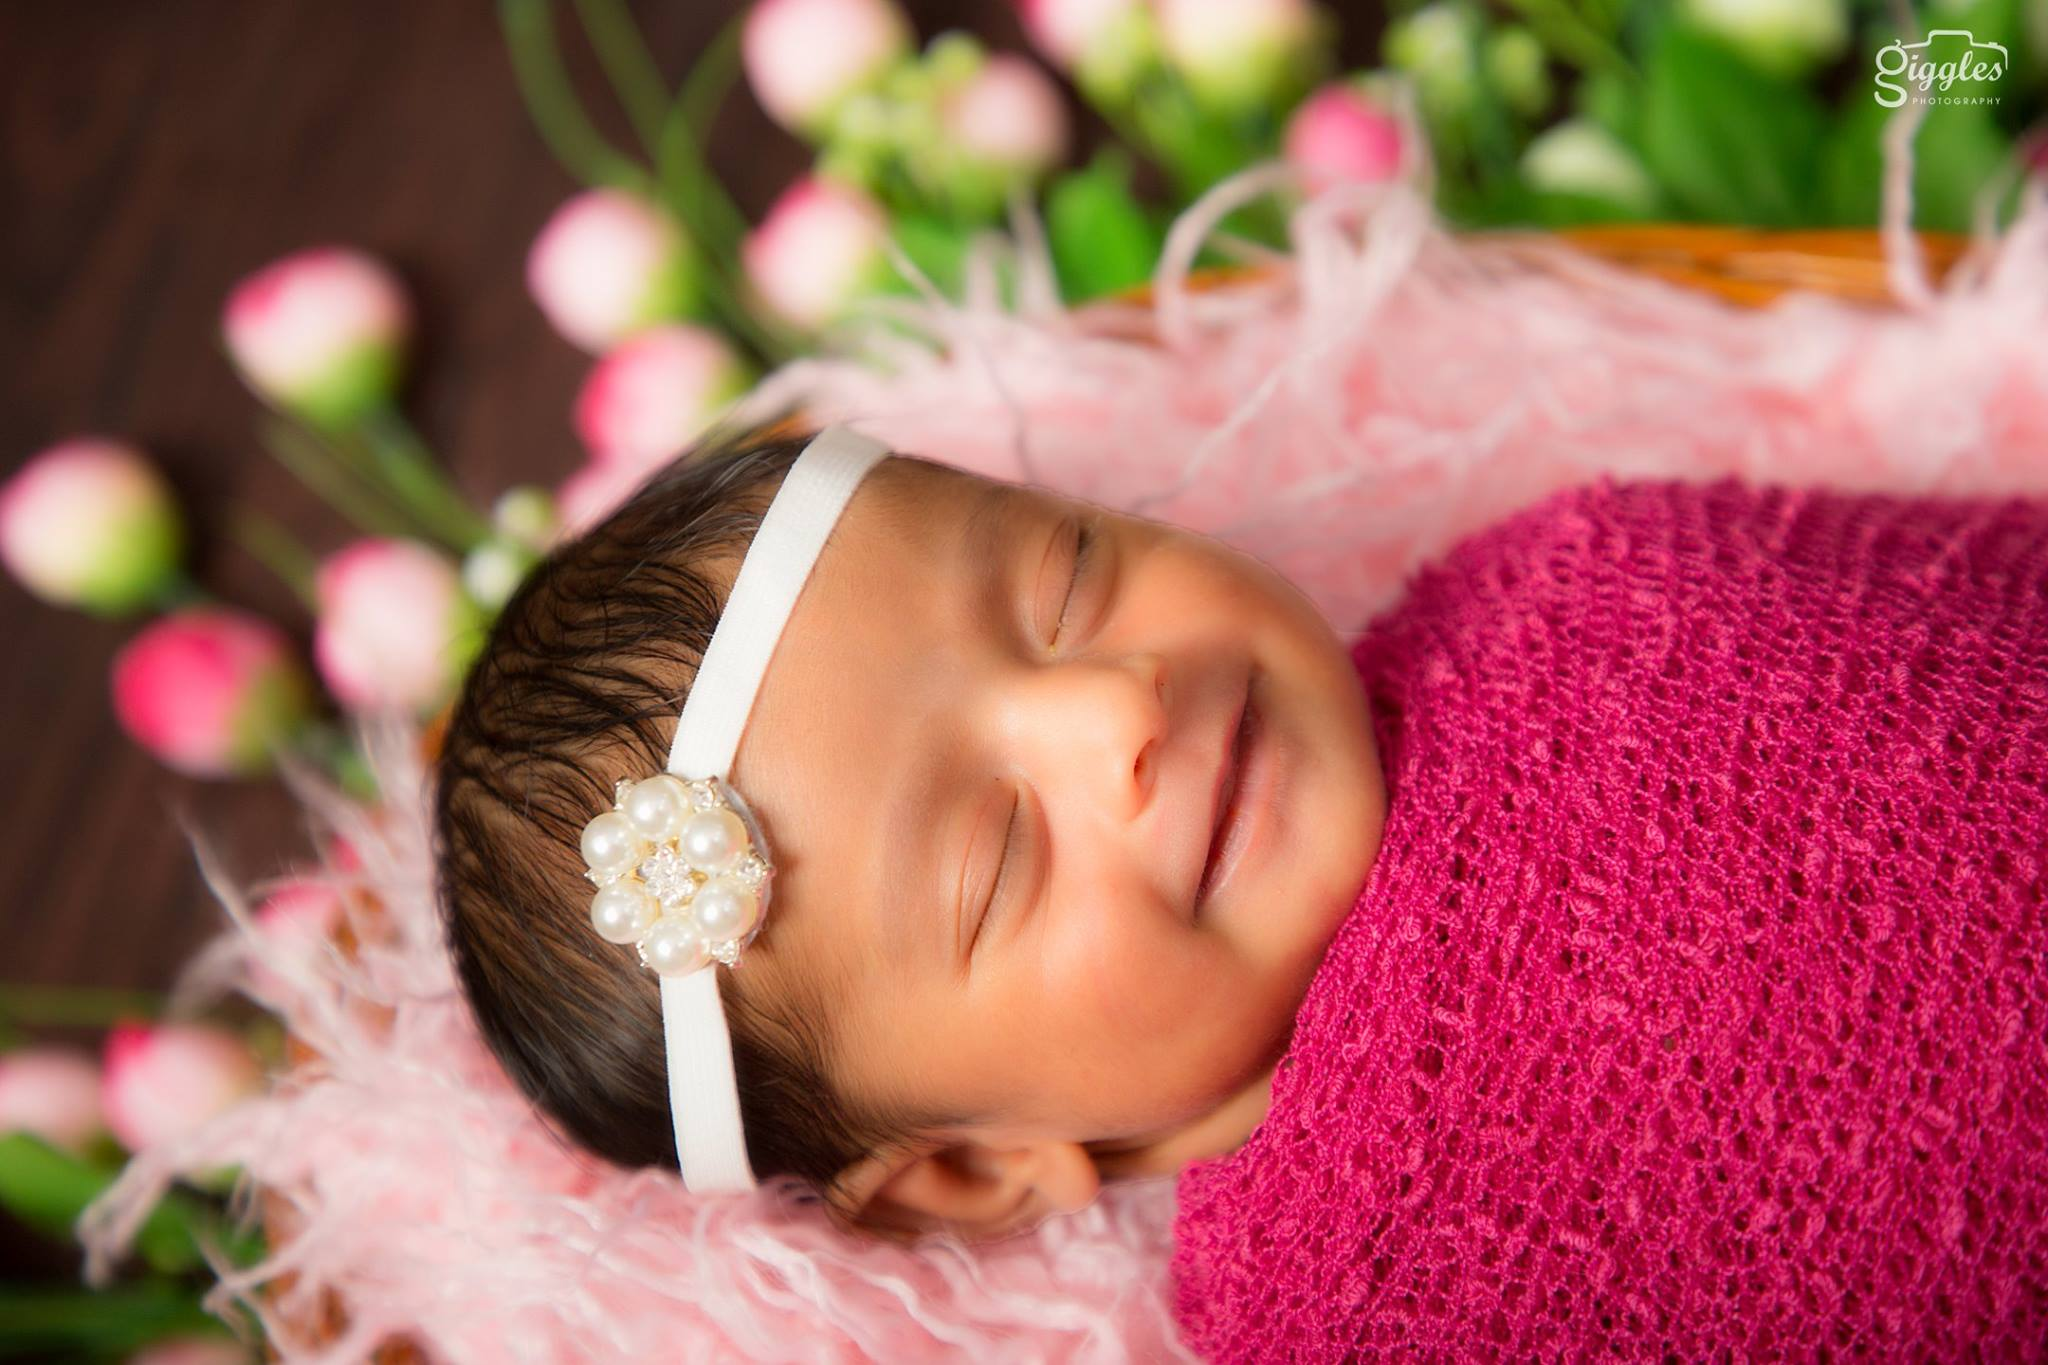 Giggles Photography | Best newborn photographers in hyderabad, india